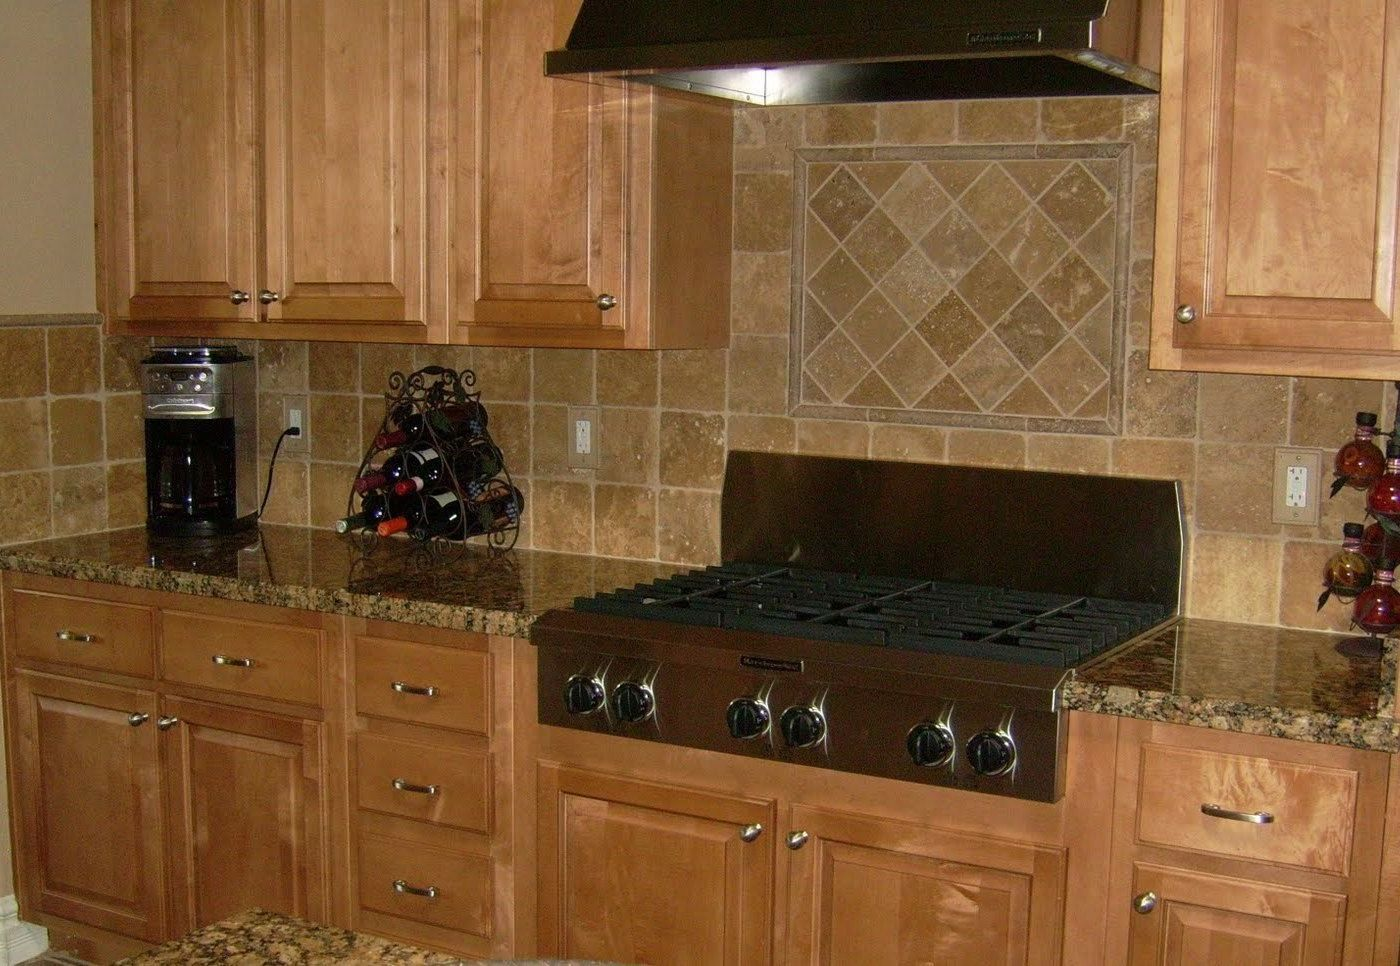 Elegant 77+ Pictures Of Kitchen Backsplash With Black Granite Countertops    Remodeling Ideas For Kitchens Check Images